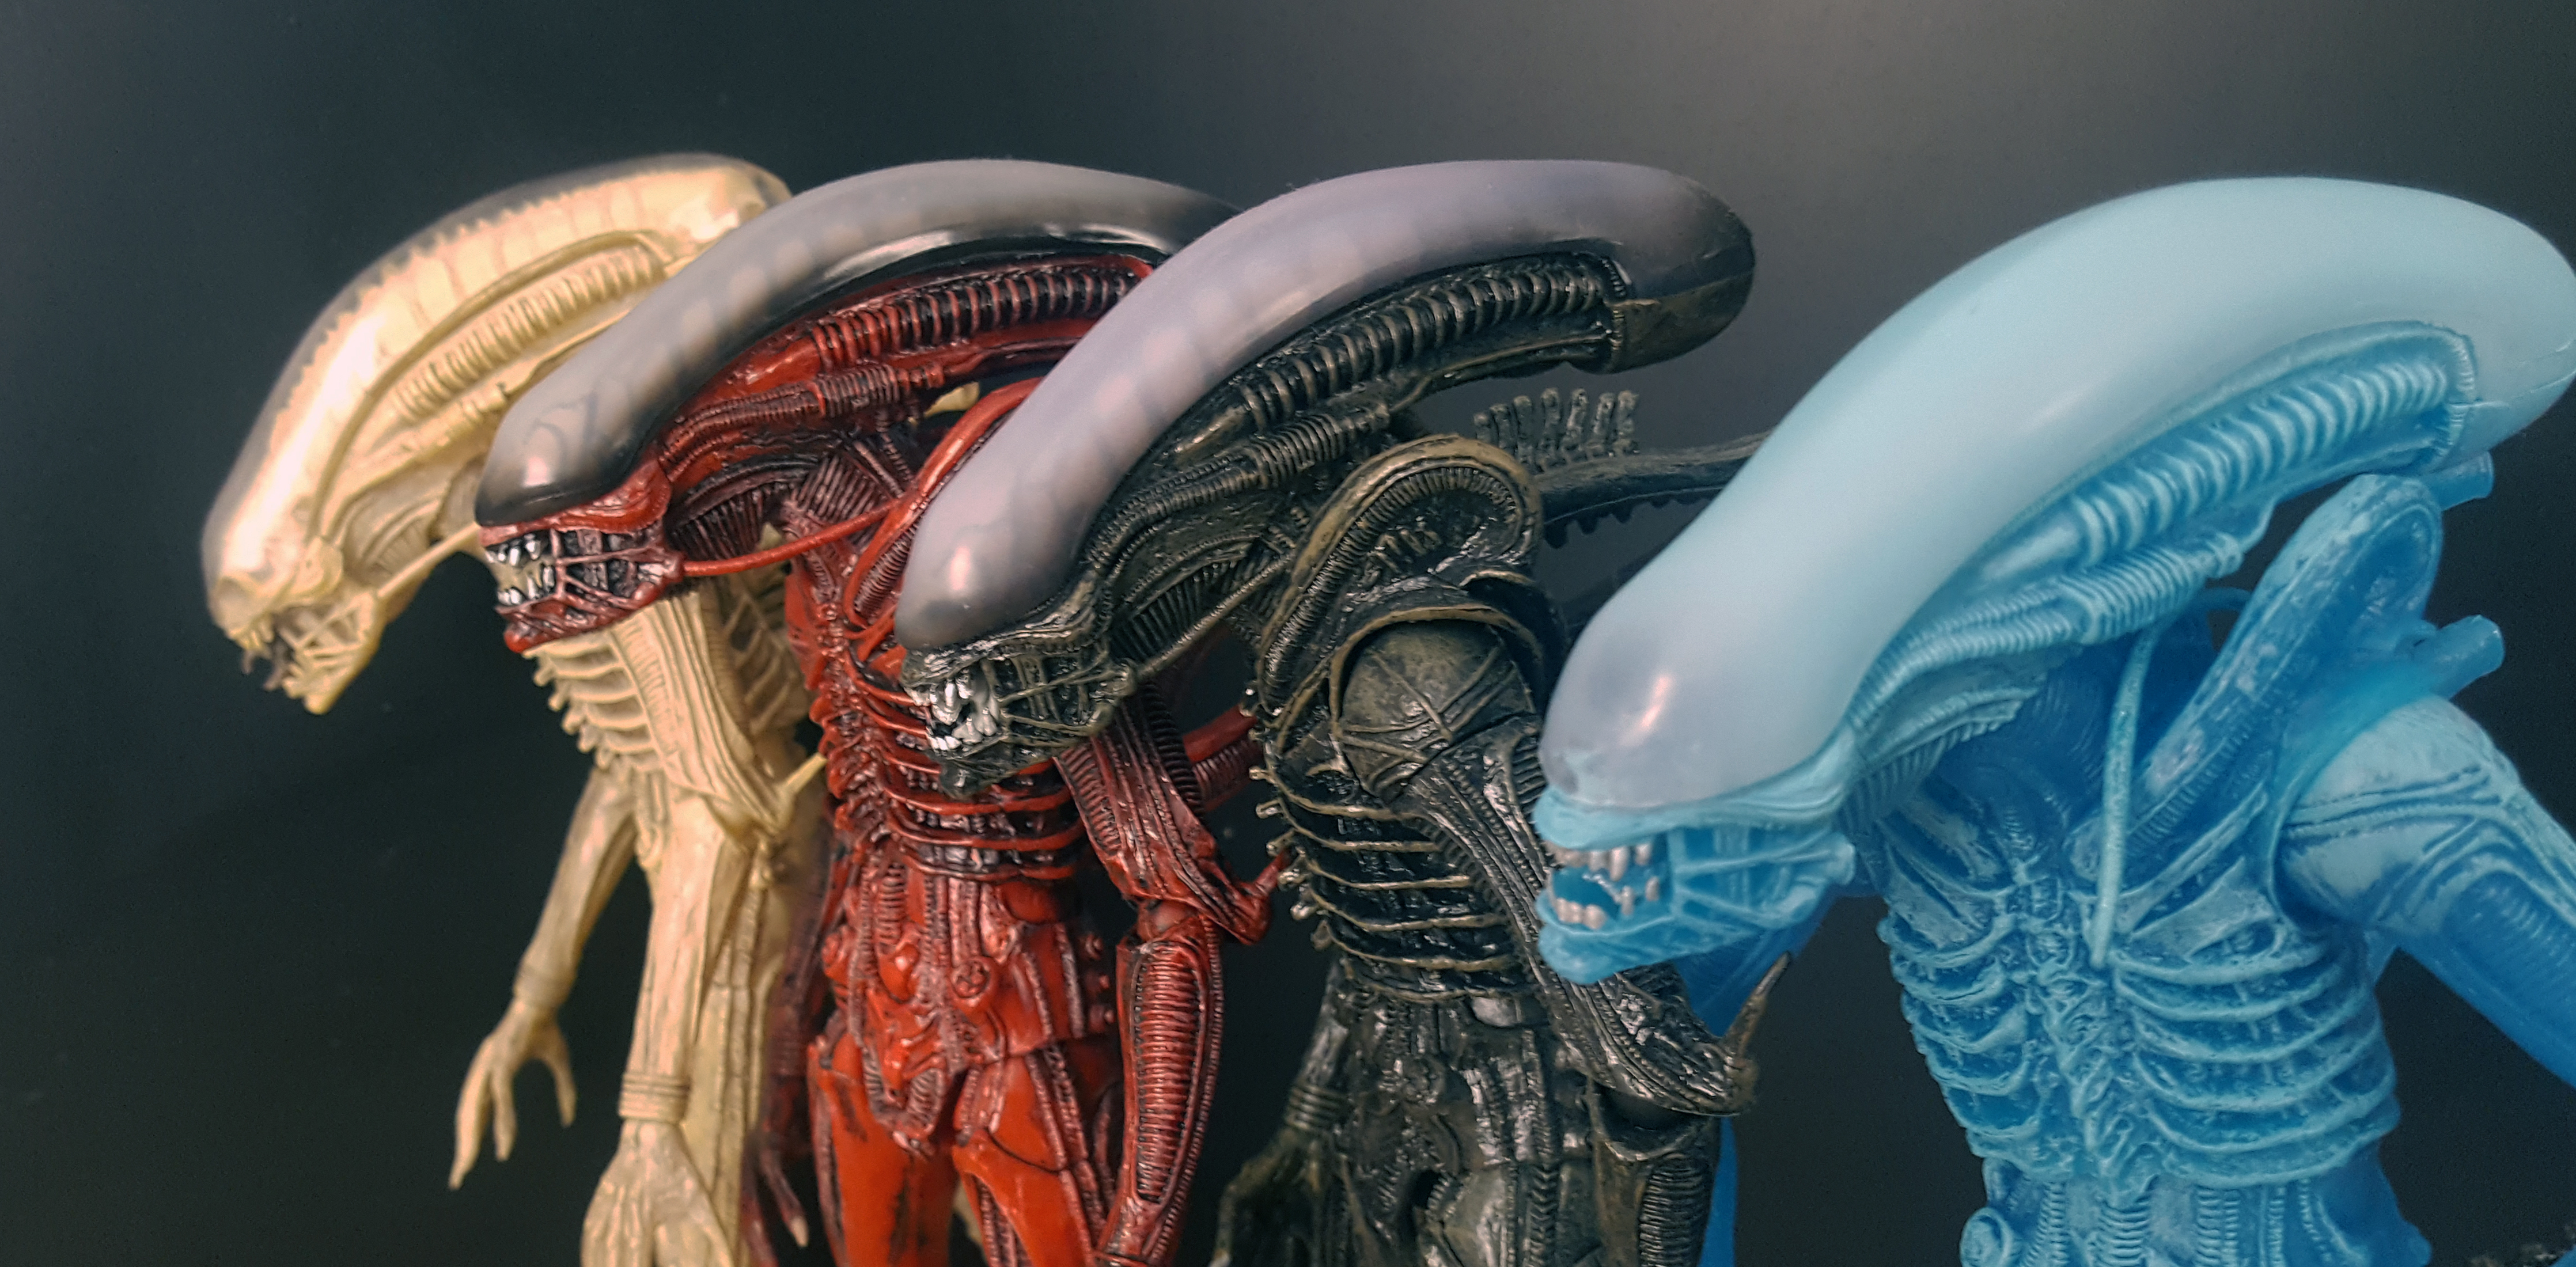 NECA Aliens Series 11 (Lambert, Defiance Xenomorph, Kenner Blue Alien Warrior) Review